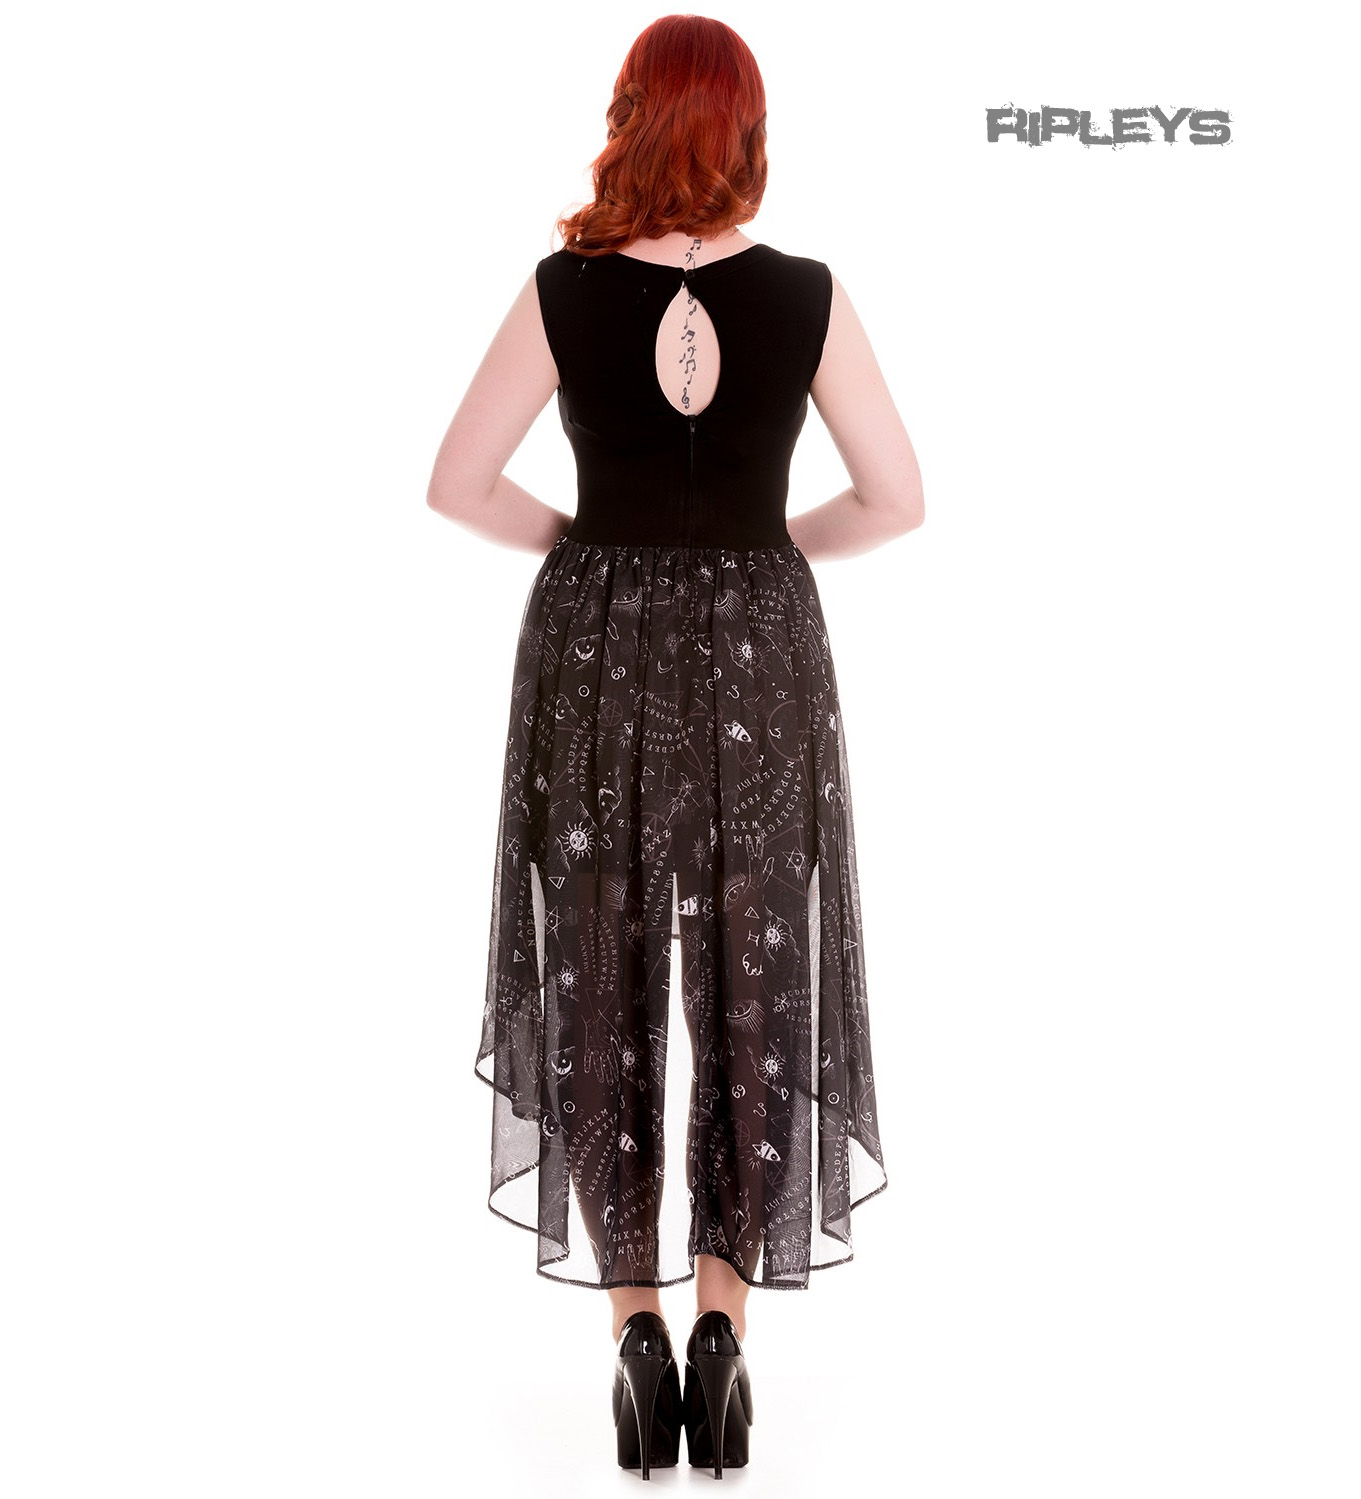 HELL-BUNNY-Spin-Doctor-Goth-Black-Witch-Ouija-SPIRIT-Dress-All-Sizes thumbnail 8